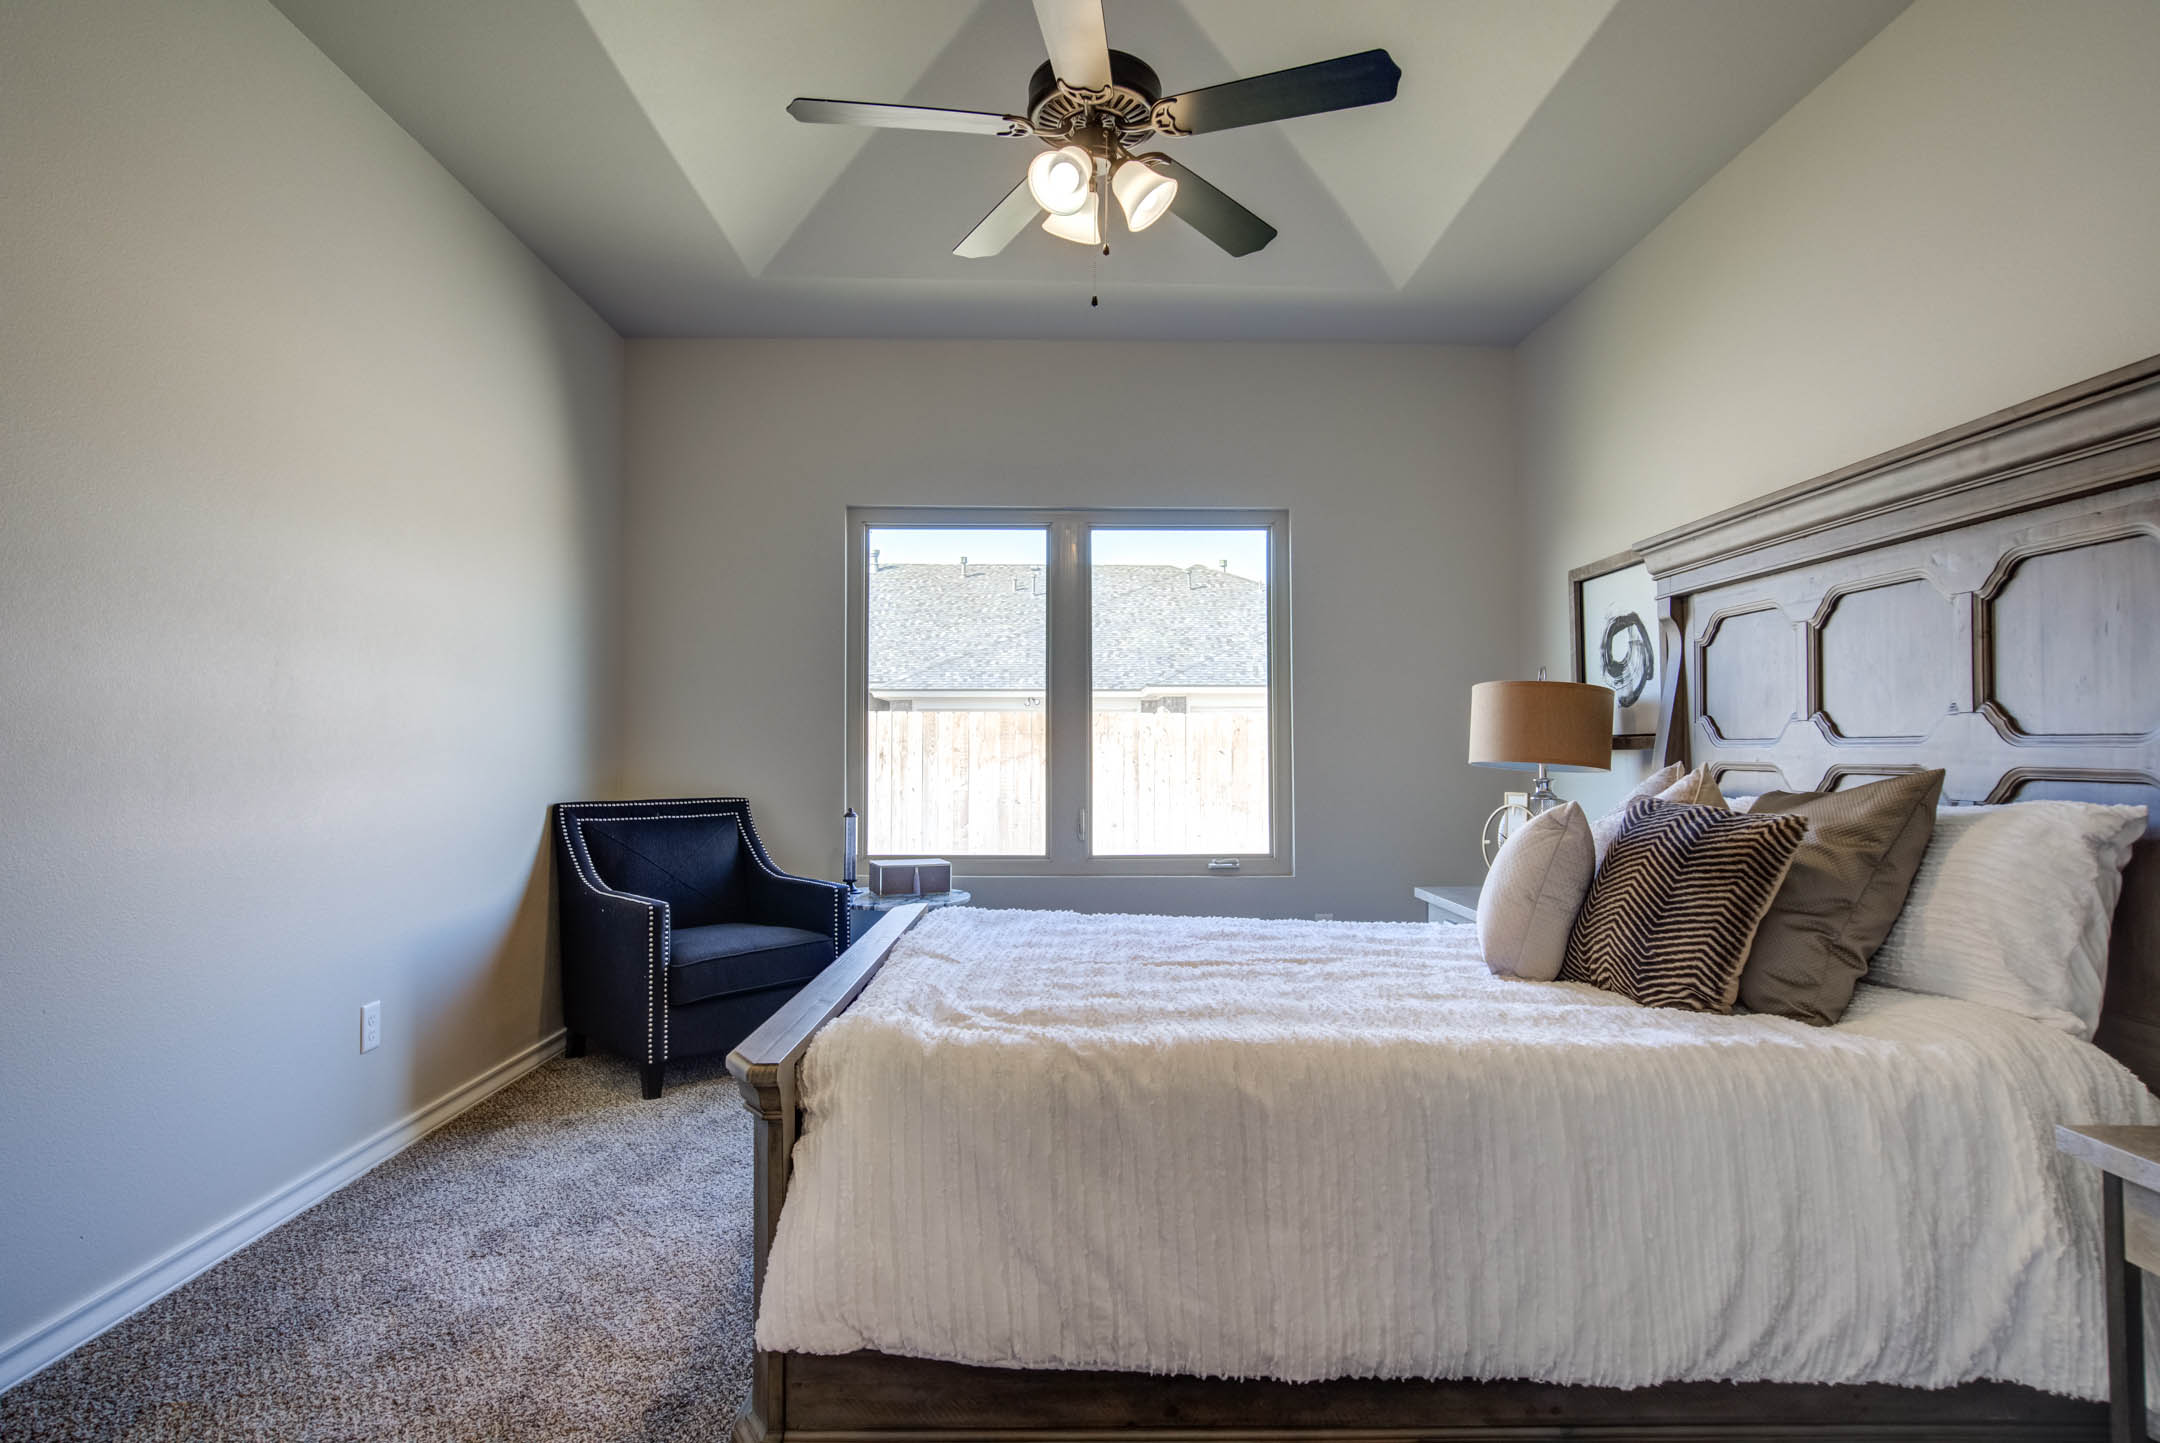 Master bedroom in new home for sale.